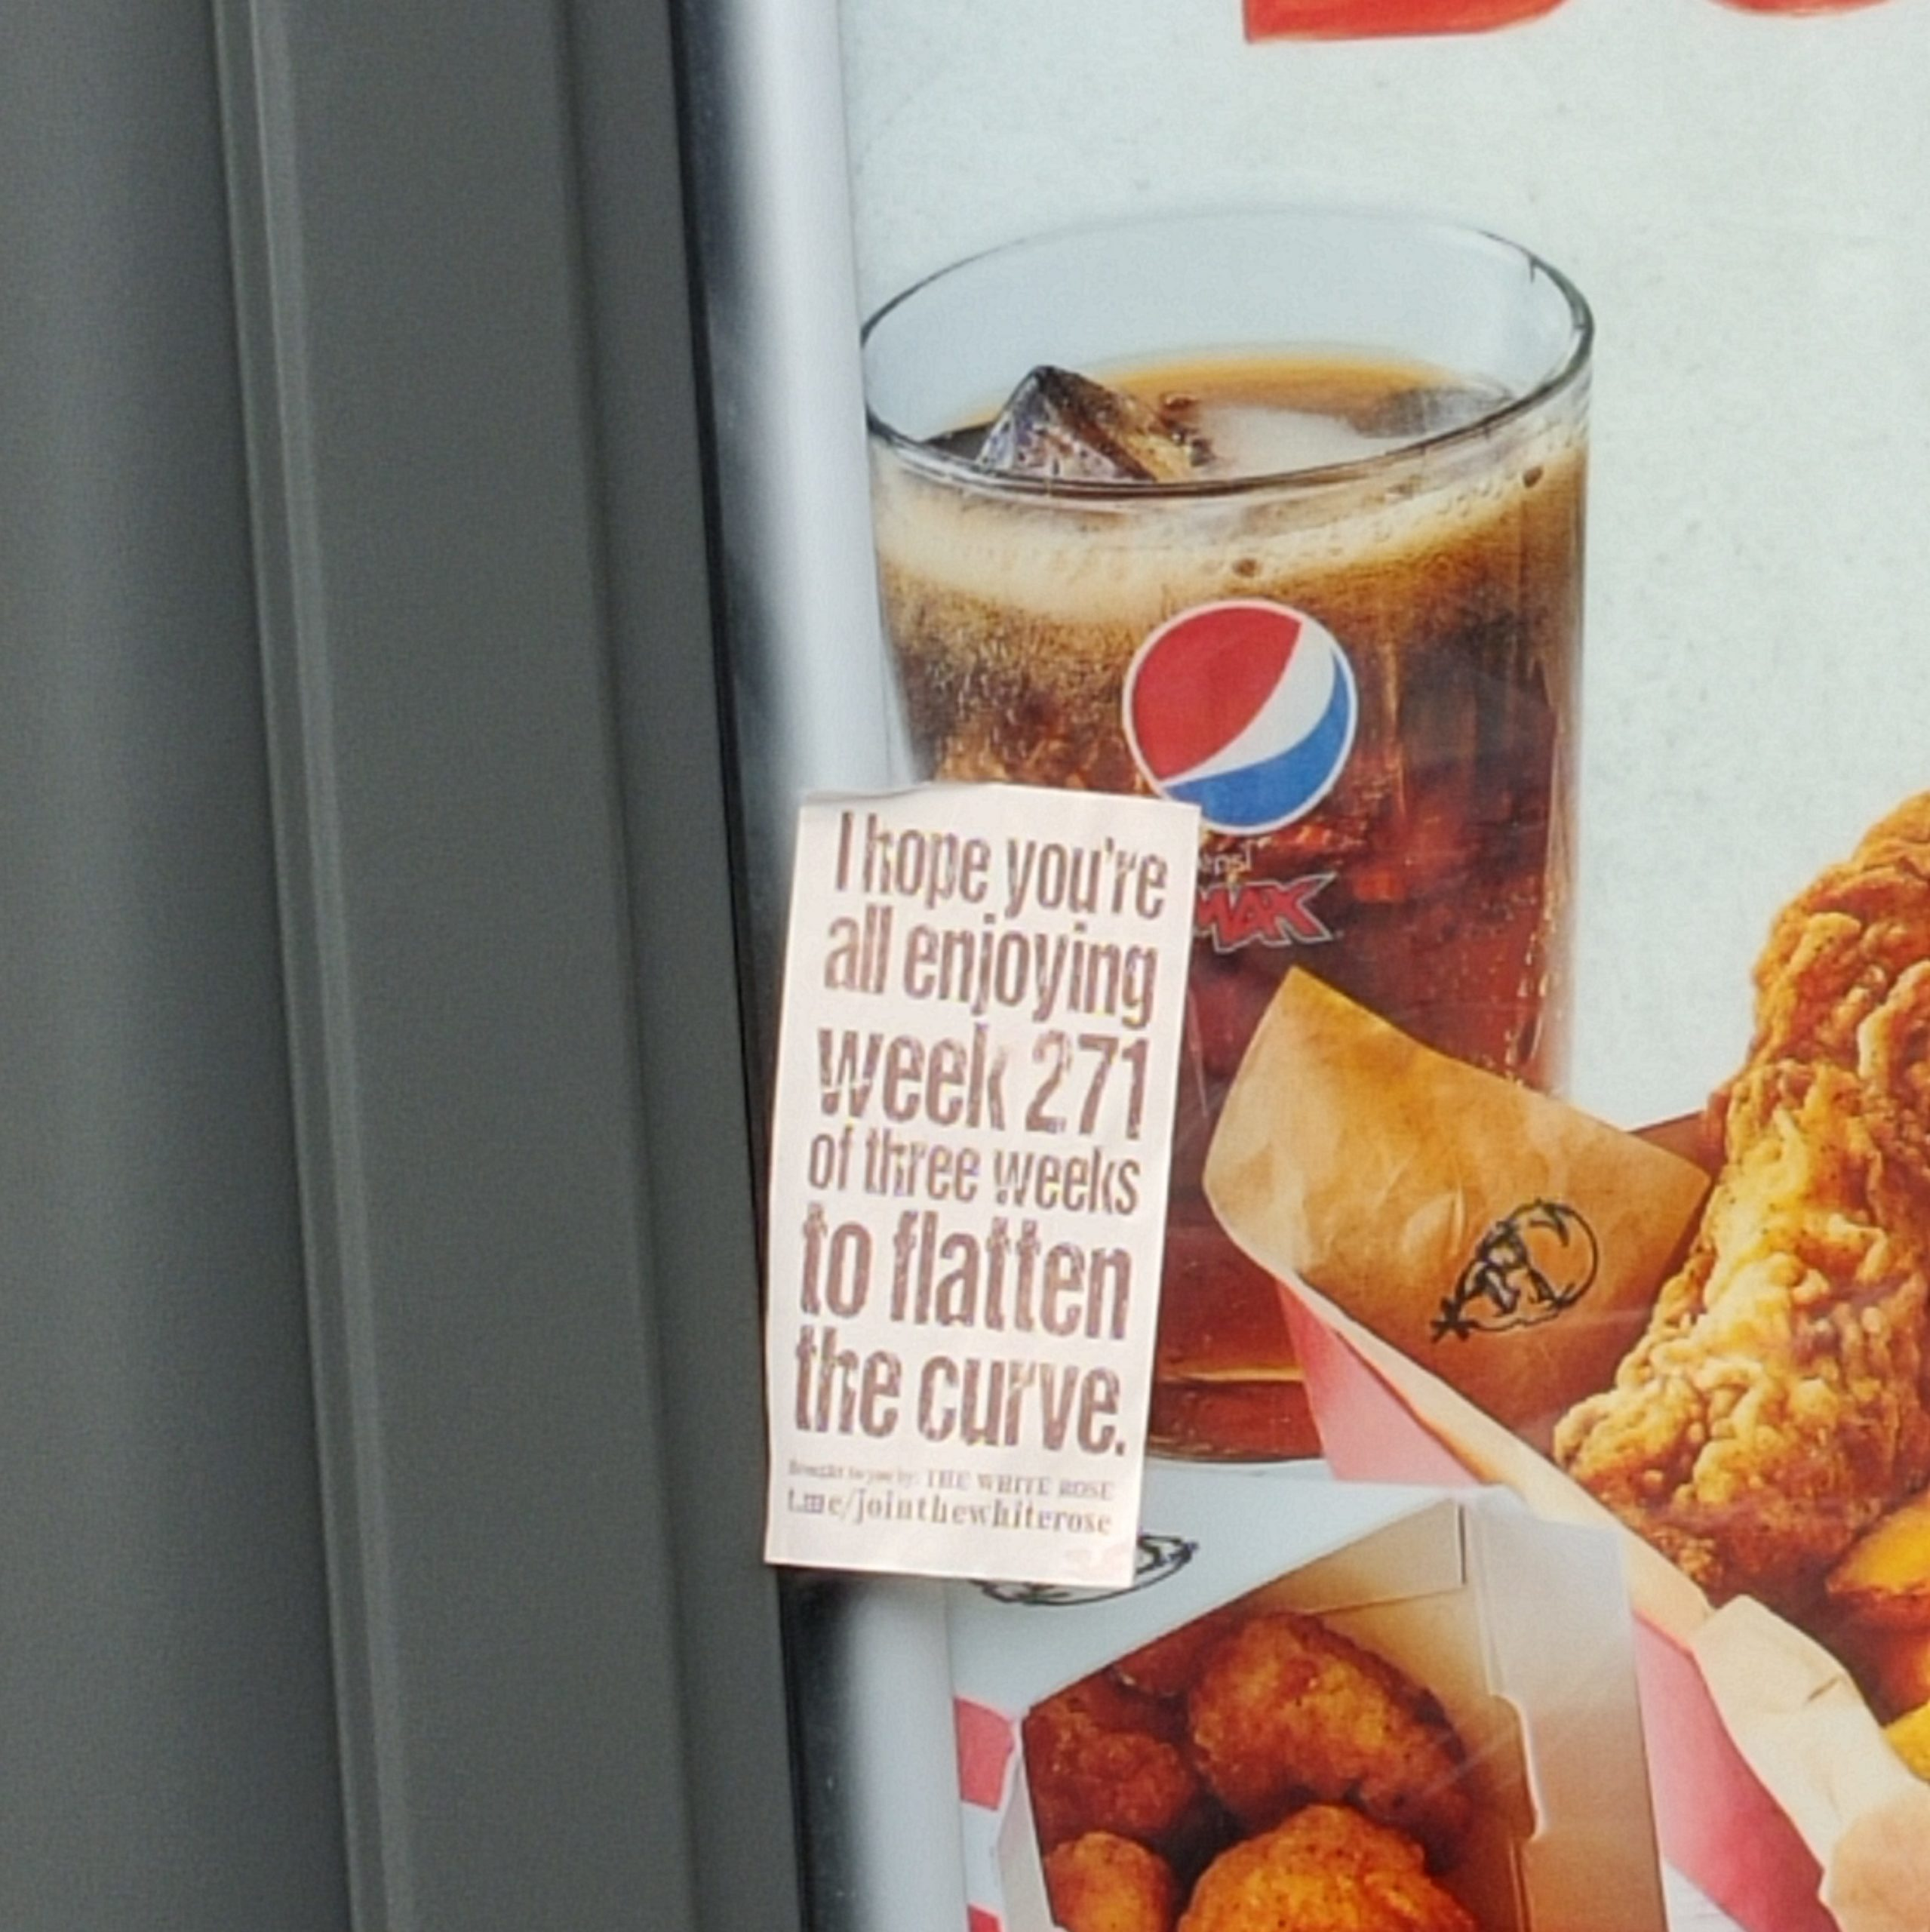 """A White Rose sticker on a bus stop advert for fried chicken. The sticker reads """"I hope you're all enjoying week 271 of three weeks to flatten the curve"""" - in small print below are adverts for the White Rose Telegram group."""